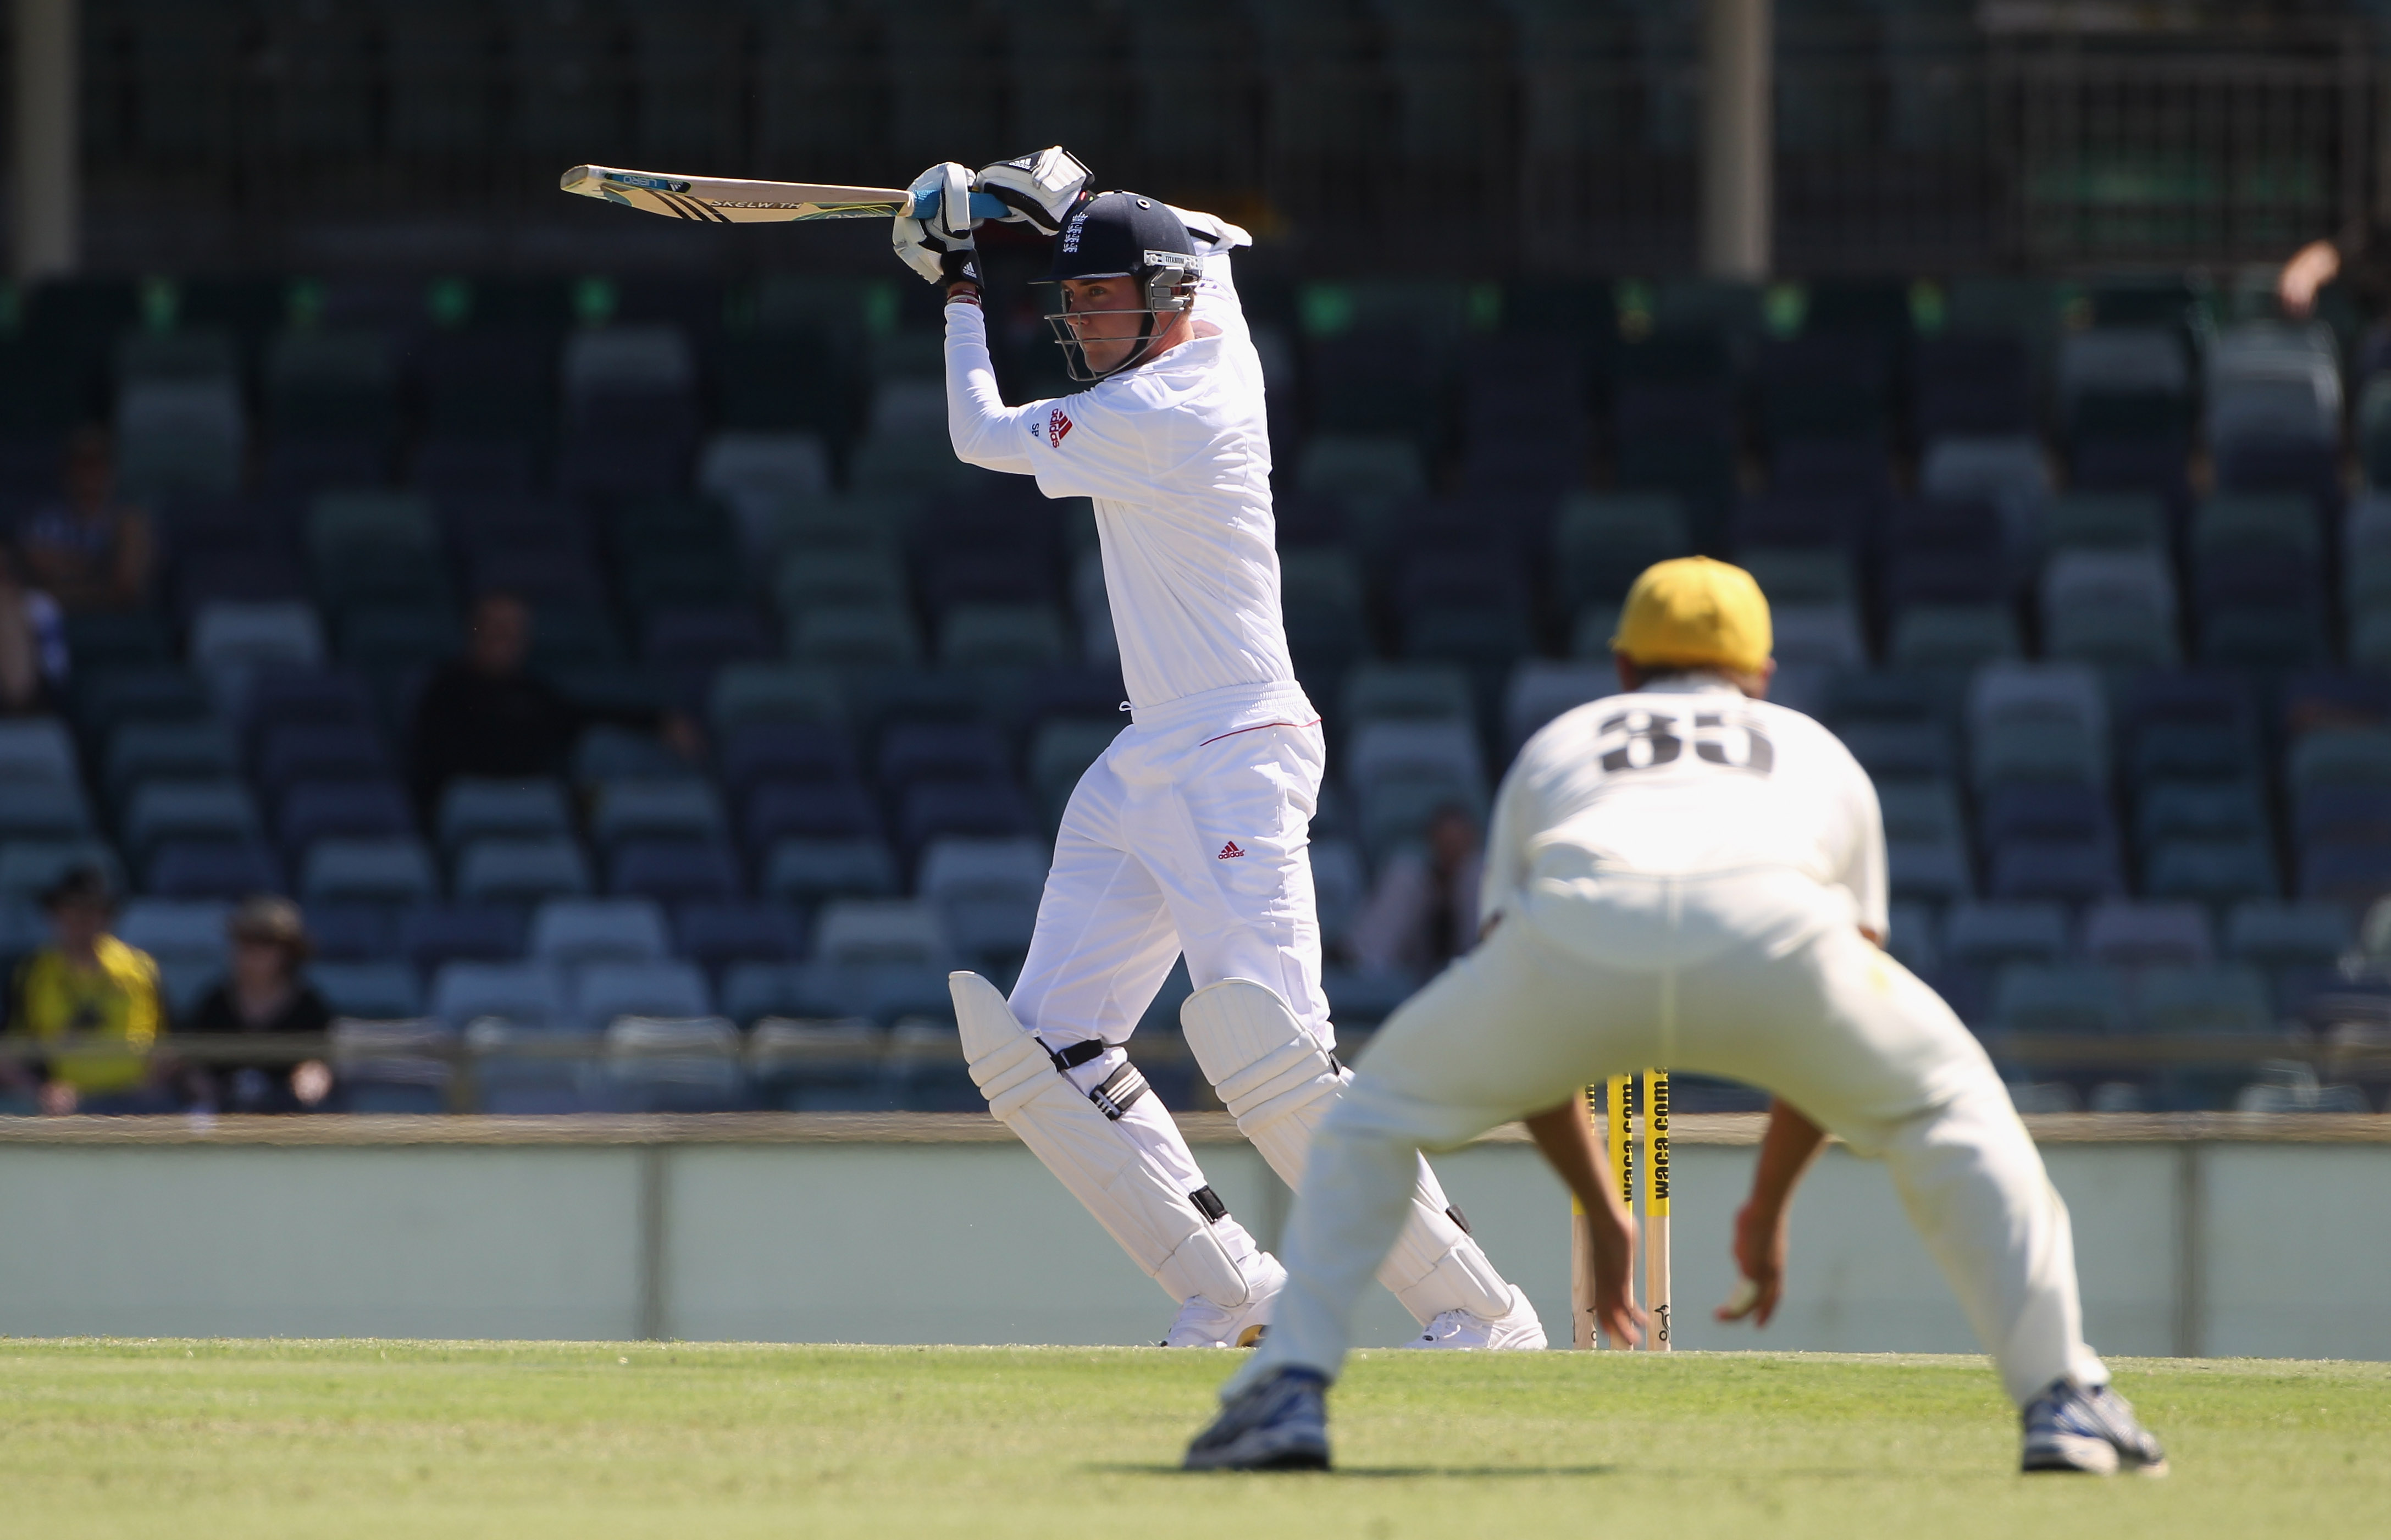 More runs from the Broad bat please!